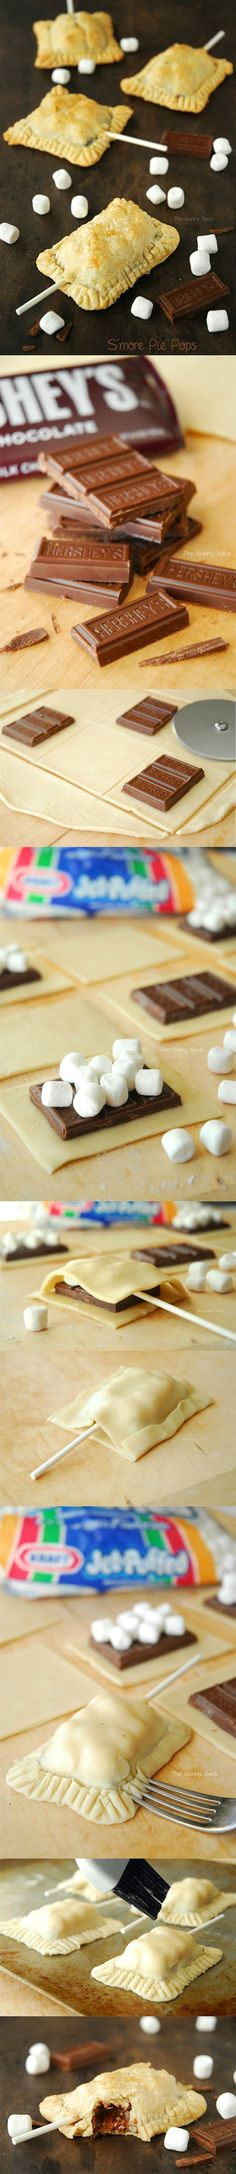 S'more pie pops. Remember Like this #food #foodie